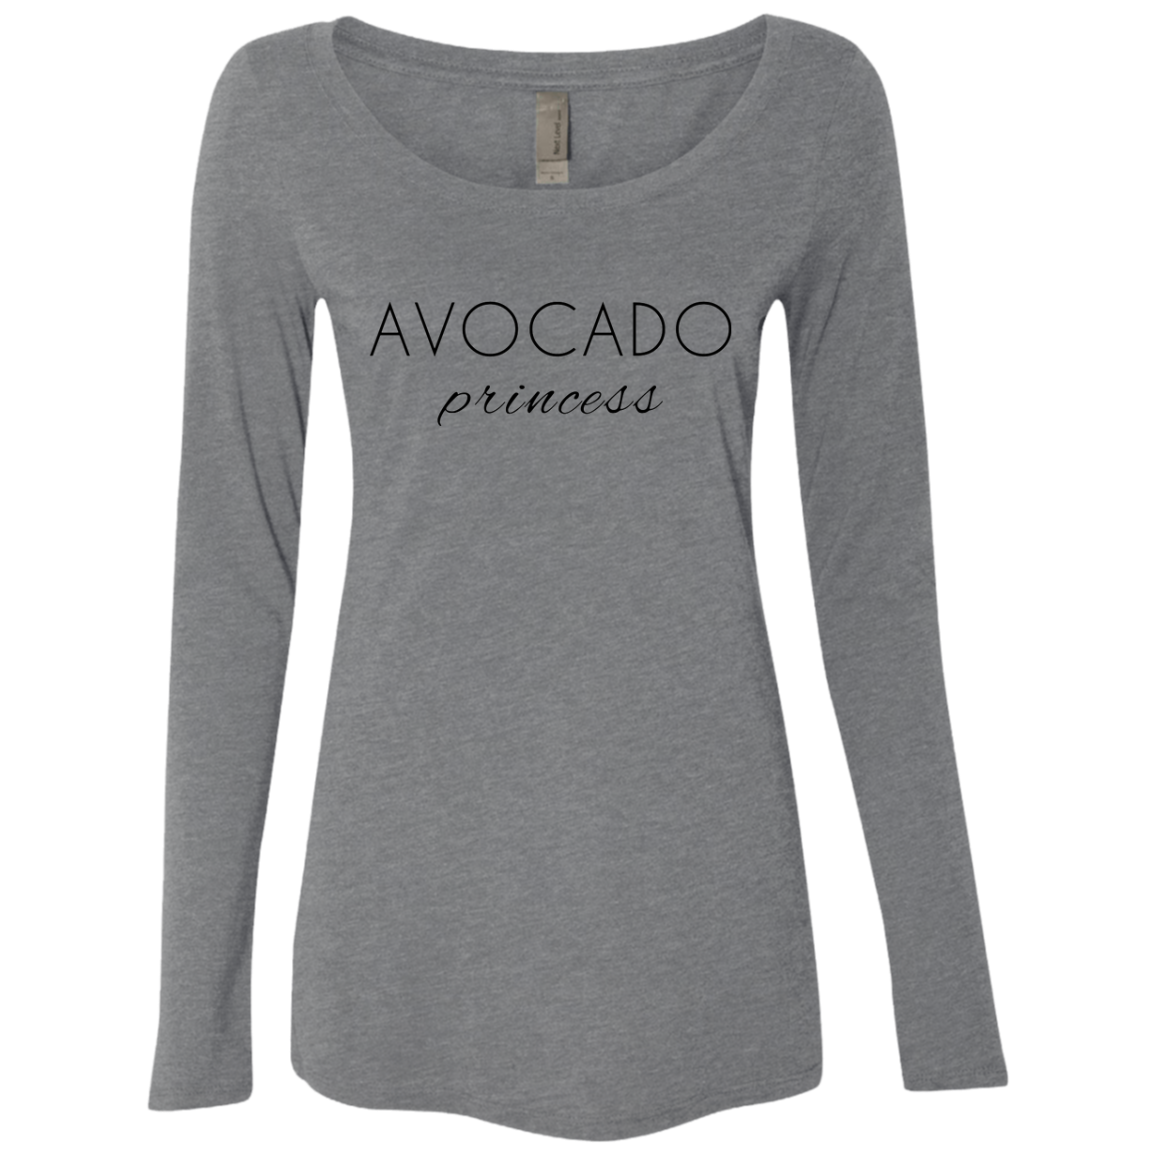 Avocado Princess Women's Long Sleeve Tee - Trendy Tees